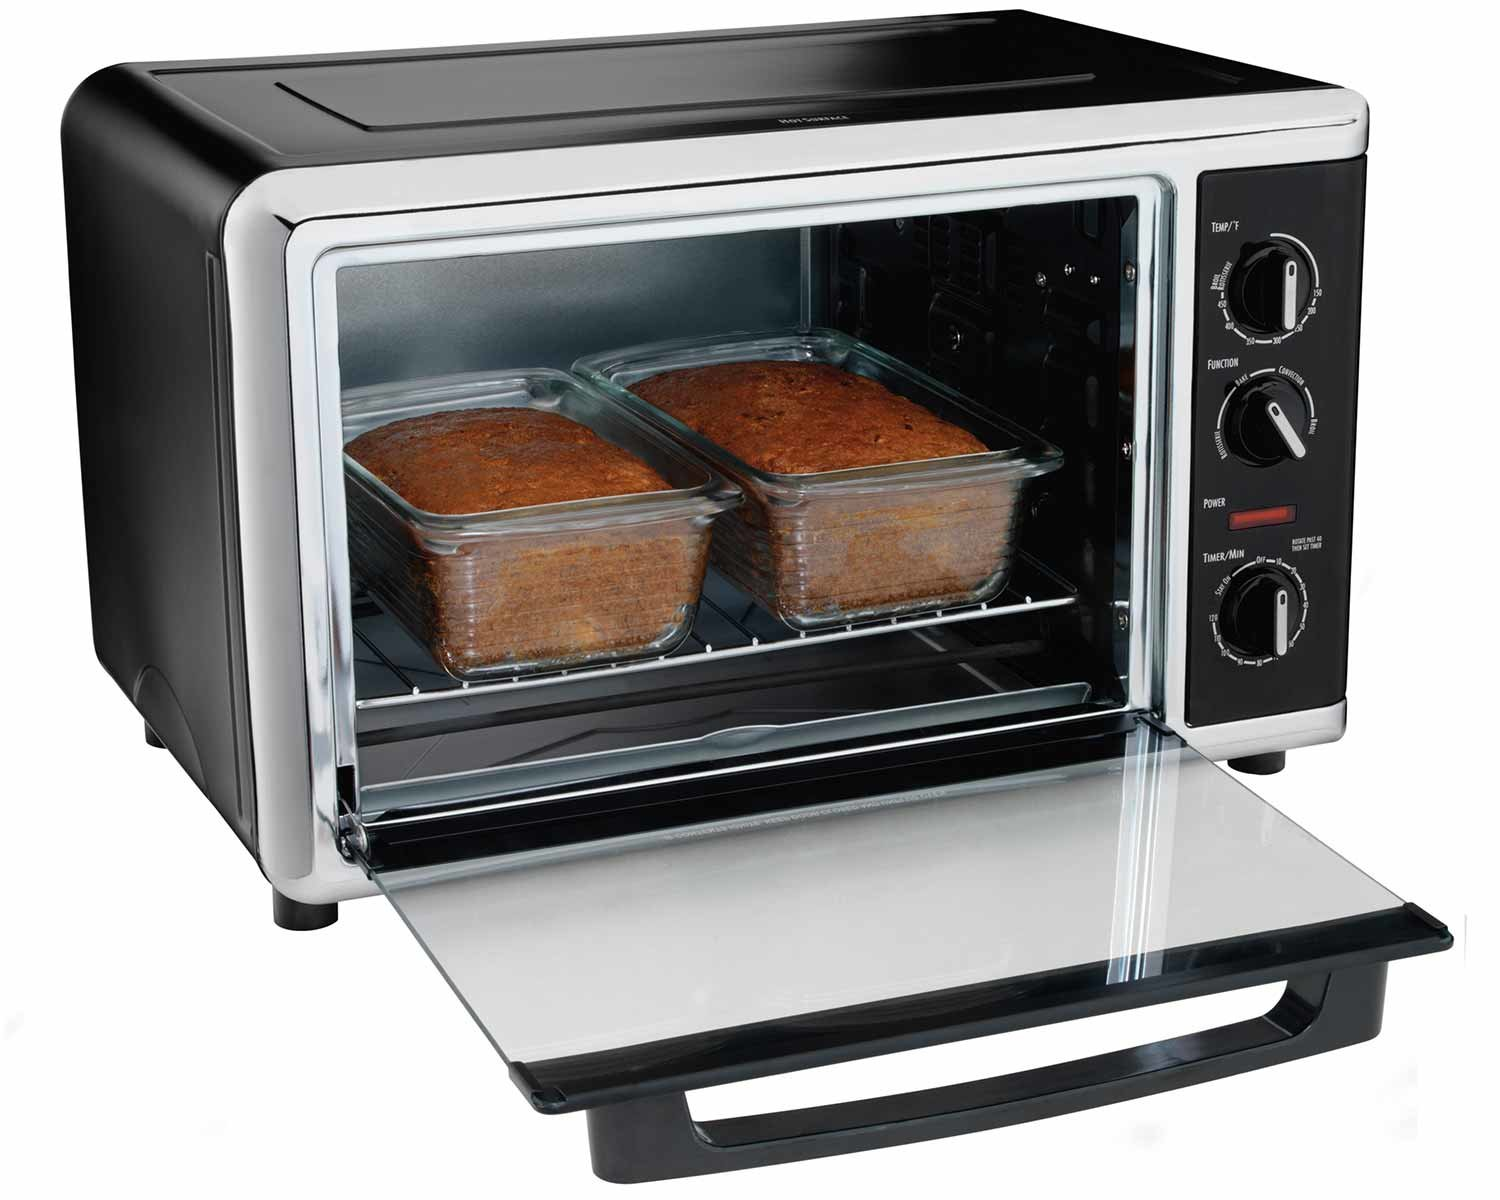 netmanma toaster biggest west info slice convection broil pizza steel largest bake stainless oven rotisserie made